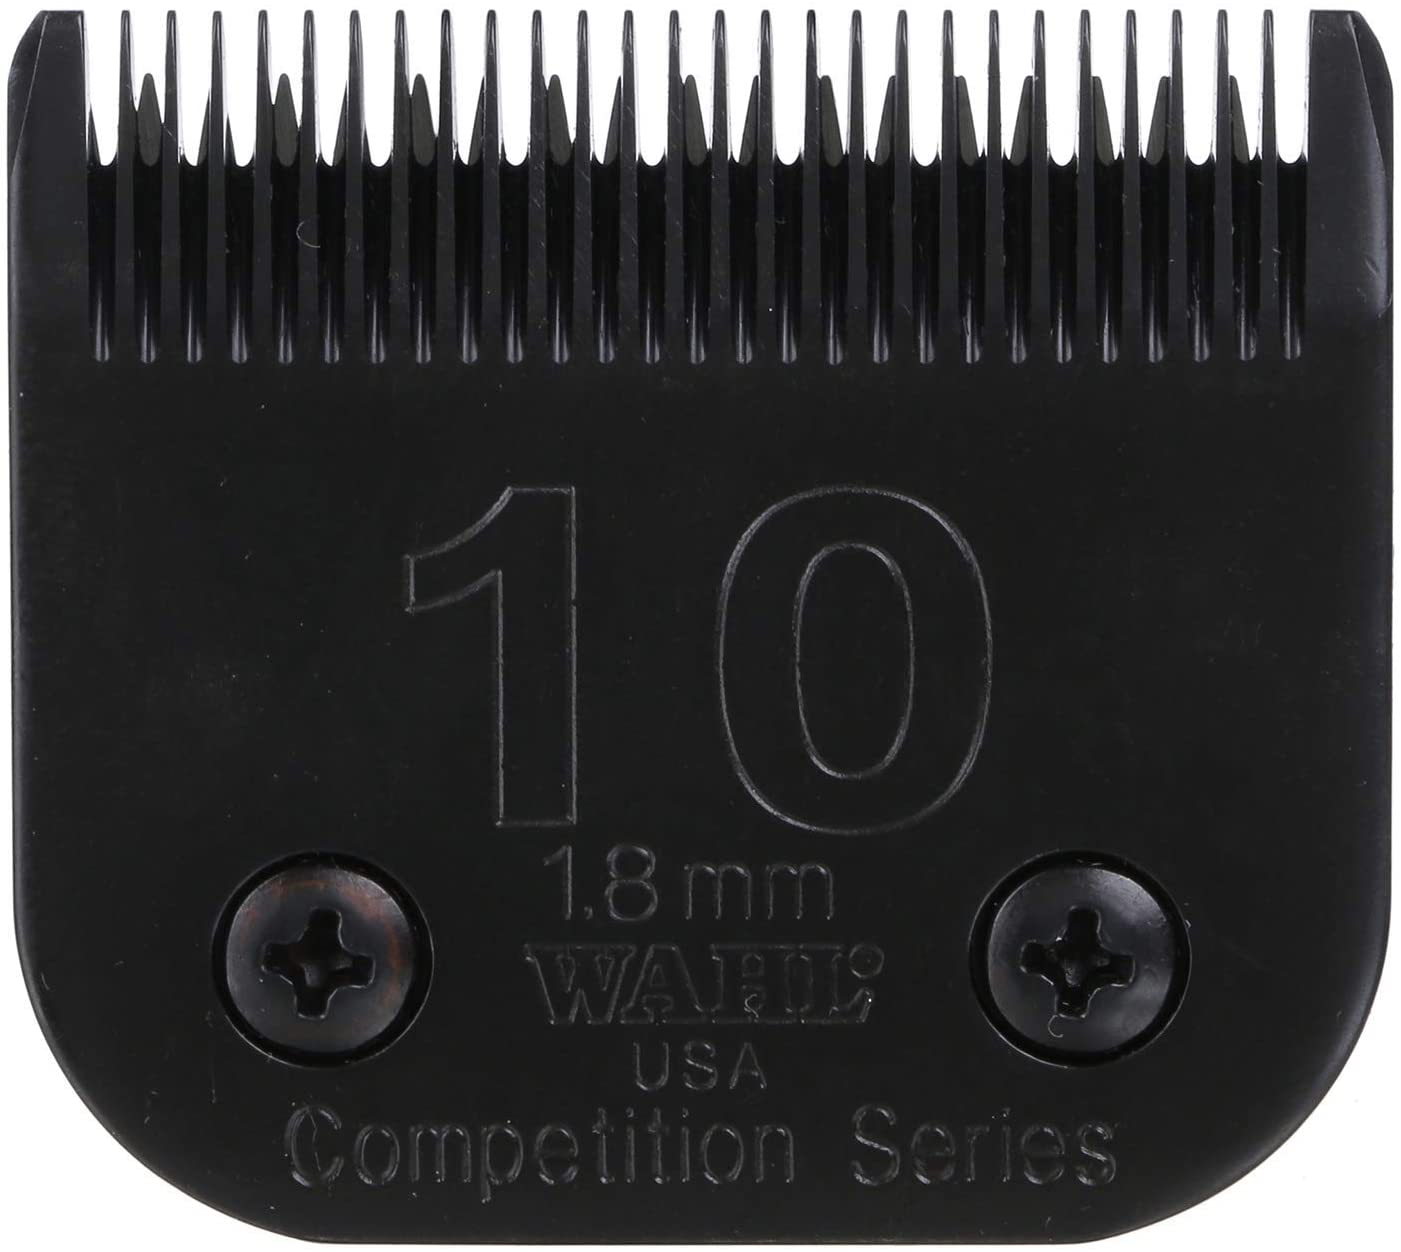 Pet Grooming Clipper Blades : Wahl Professional Animal #10 Medium Ultimate Competition Series Detachable Blade with 1/16-Inch Cut Length (#2358-500), Black